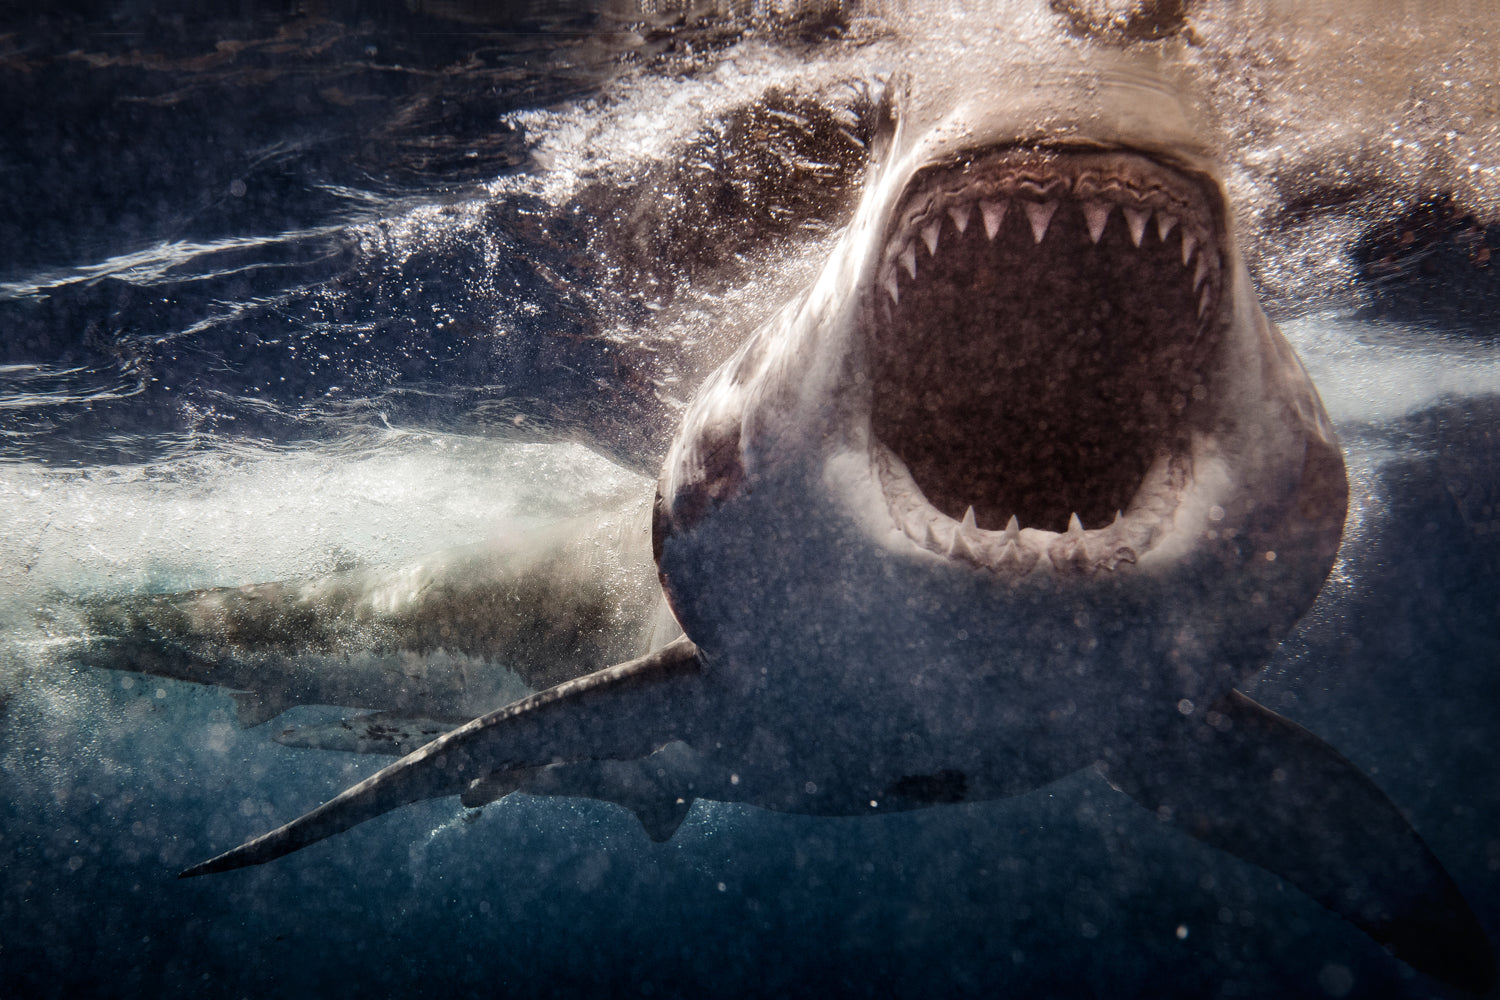 Great White Shark open mouth photographed by Thurston Photo